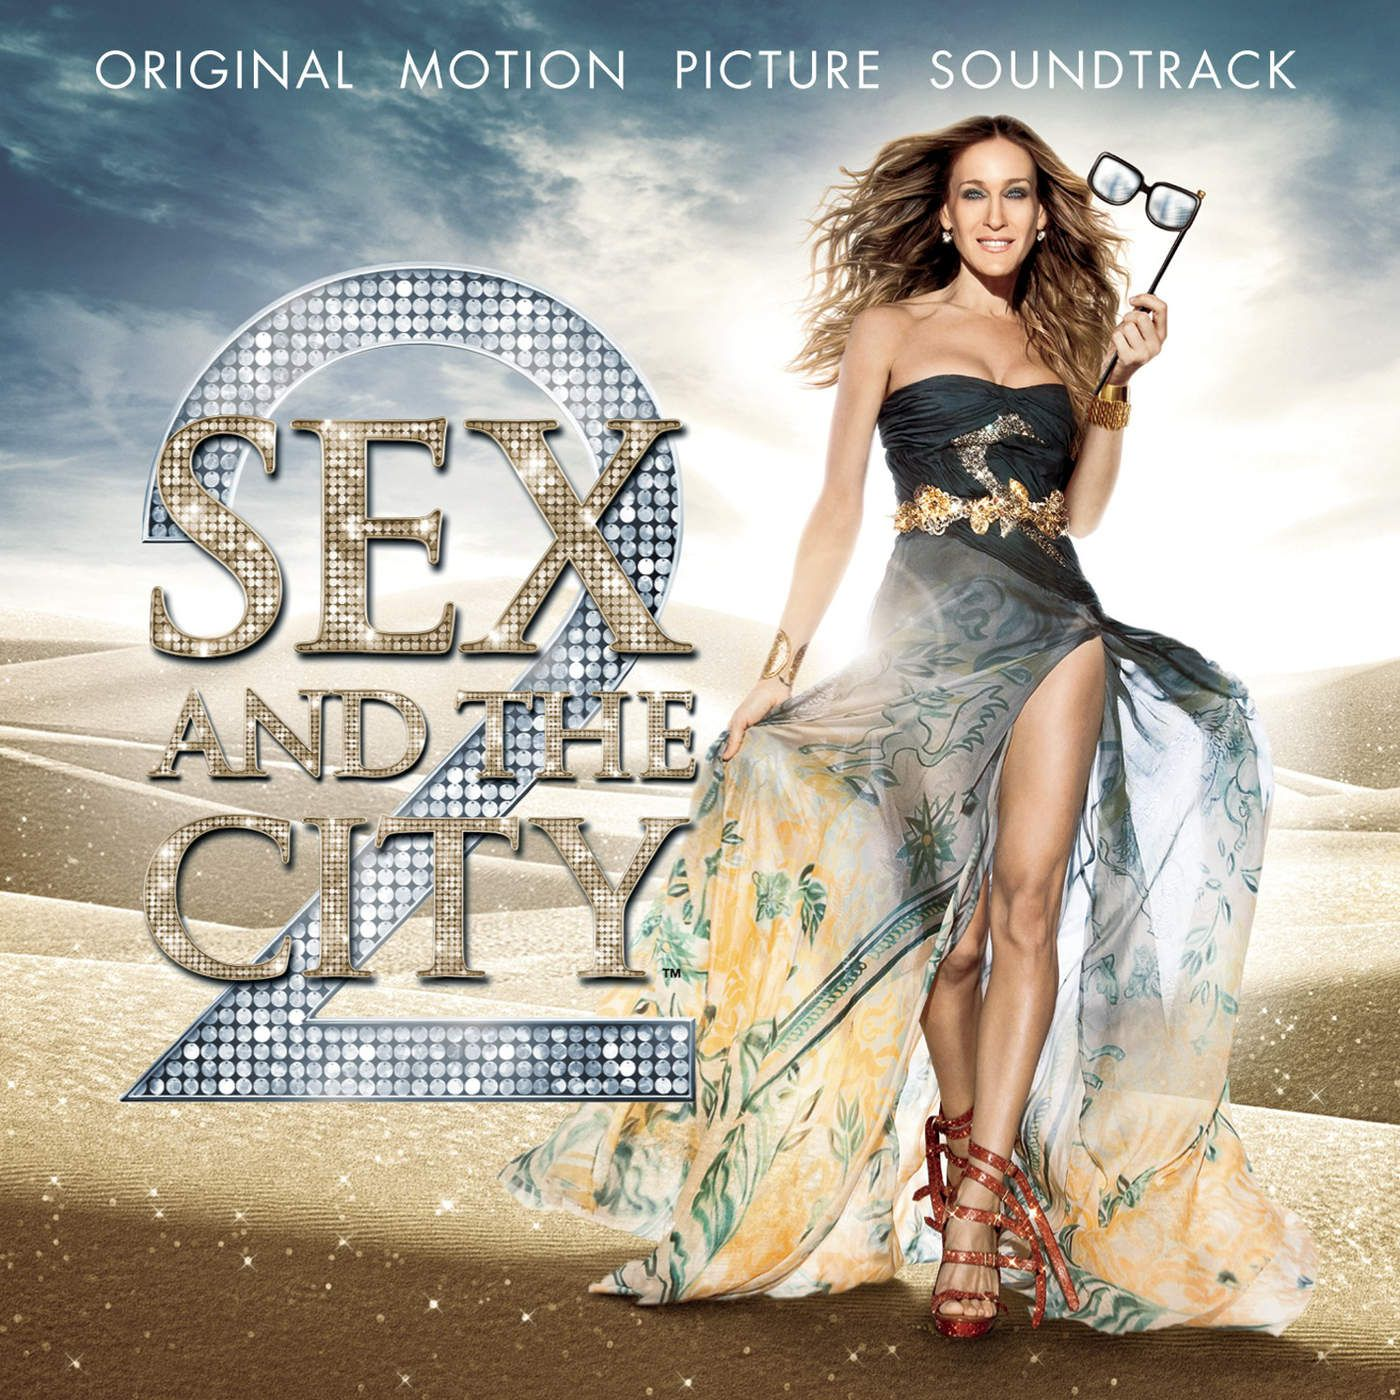 Sex and the city motion picture soundtrack